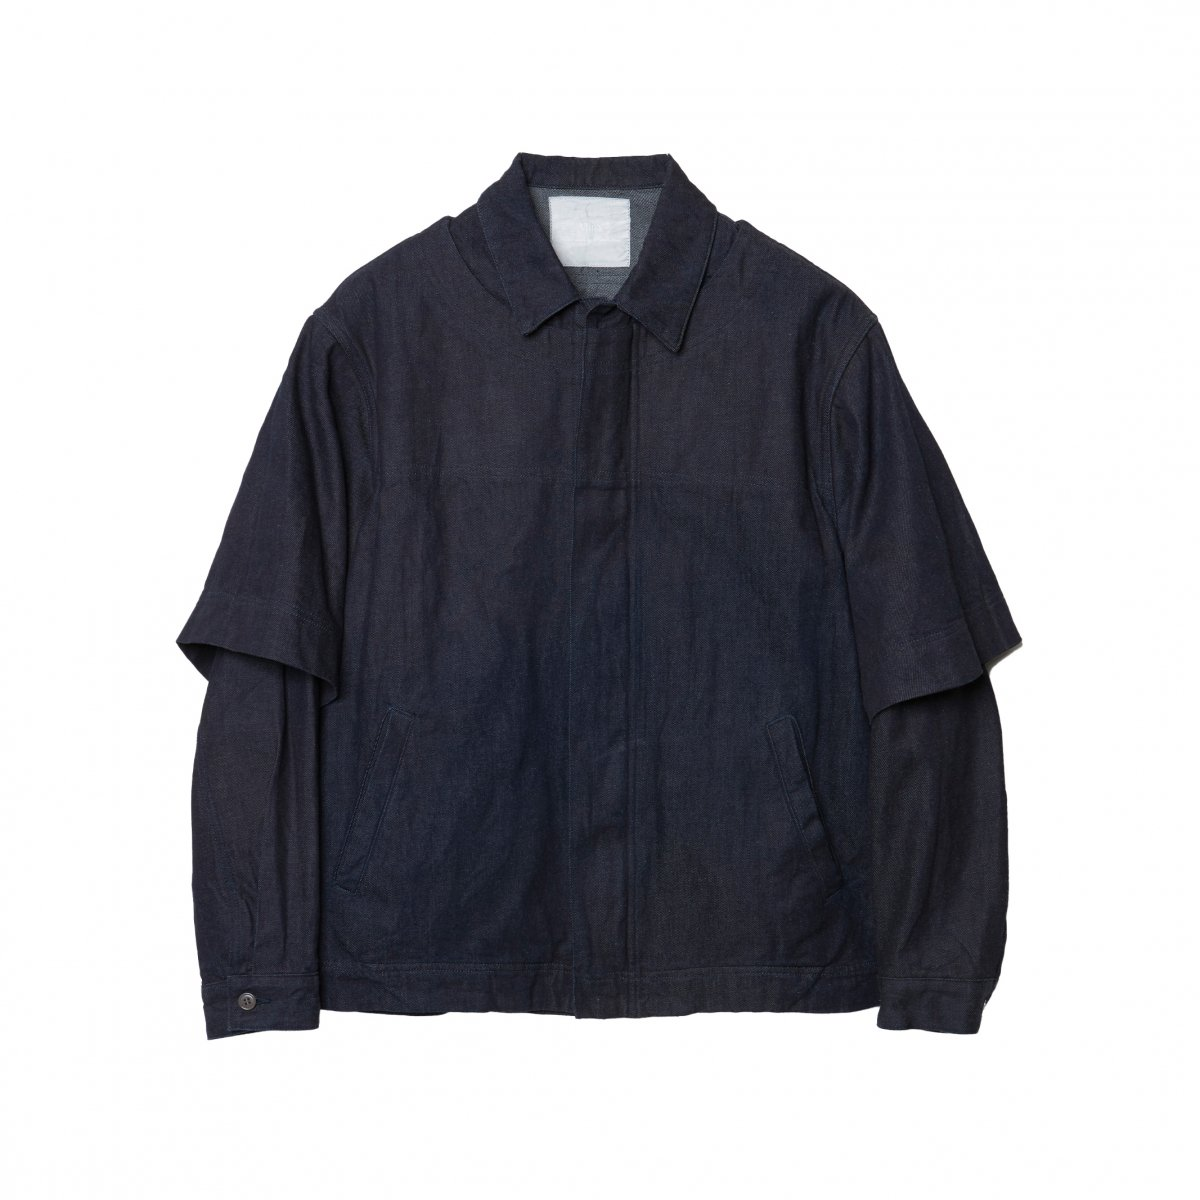 <img class='new_mark_img1' src='https://img.shop-pro.jp/img/new/icons5.gif' style='border:none;display:inline;margin:0px;padding:0px;width:auto;' />PULL OVERED DENIM BLOUSON / NAVY